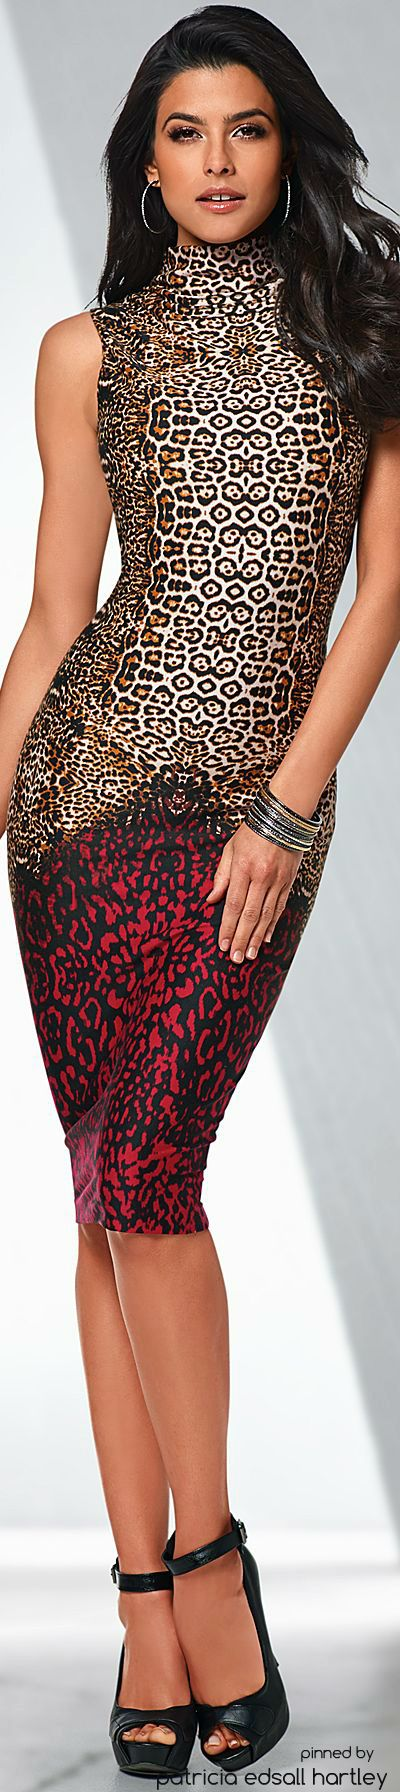 Most beautiful animal print dress I've ever seen. Love this 1,000 times.